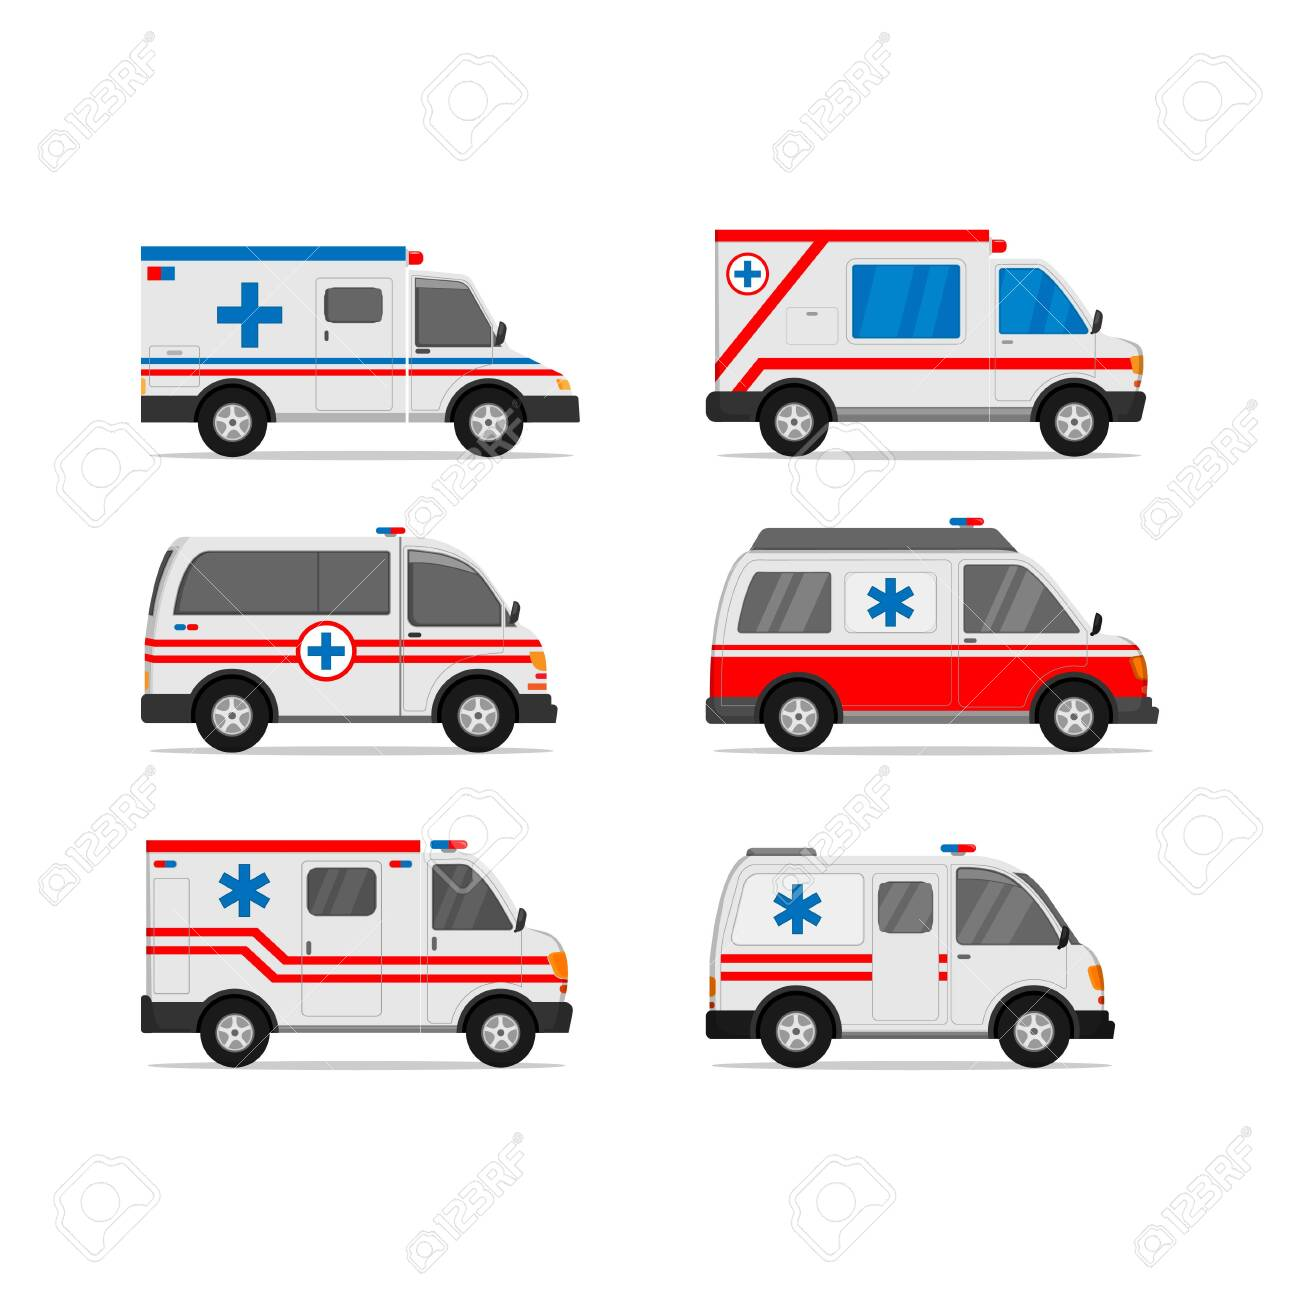 illustration of ambulance vector design set for medical and first aid needs white background - 137044464